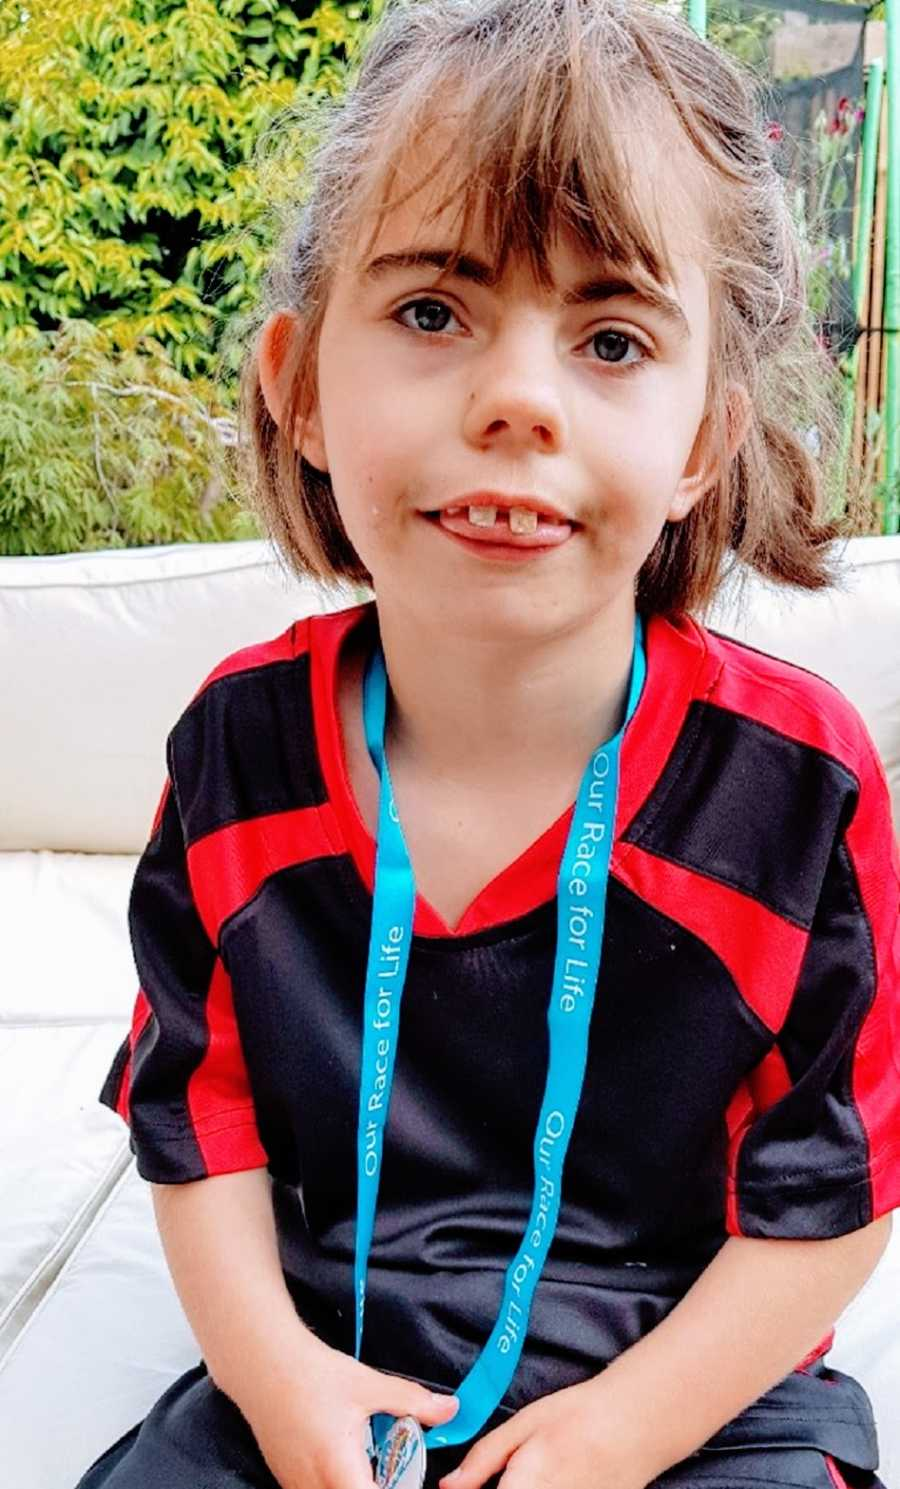 A girl wearing a lanyard sticks her tongue out at the camera